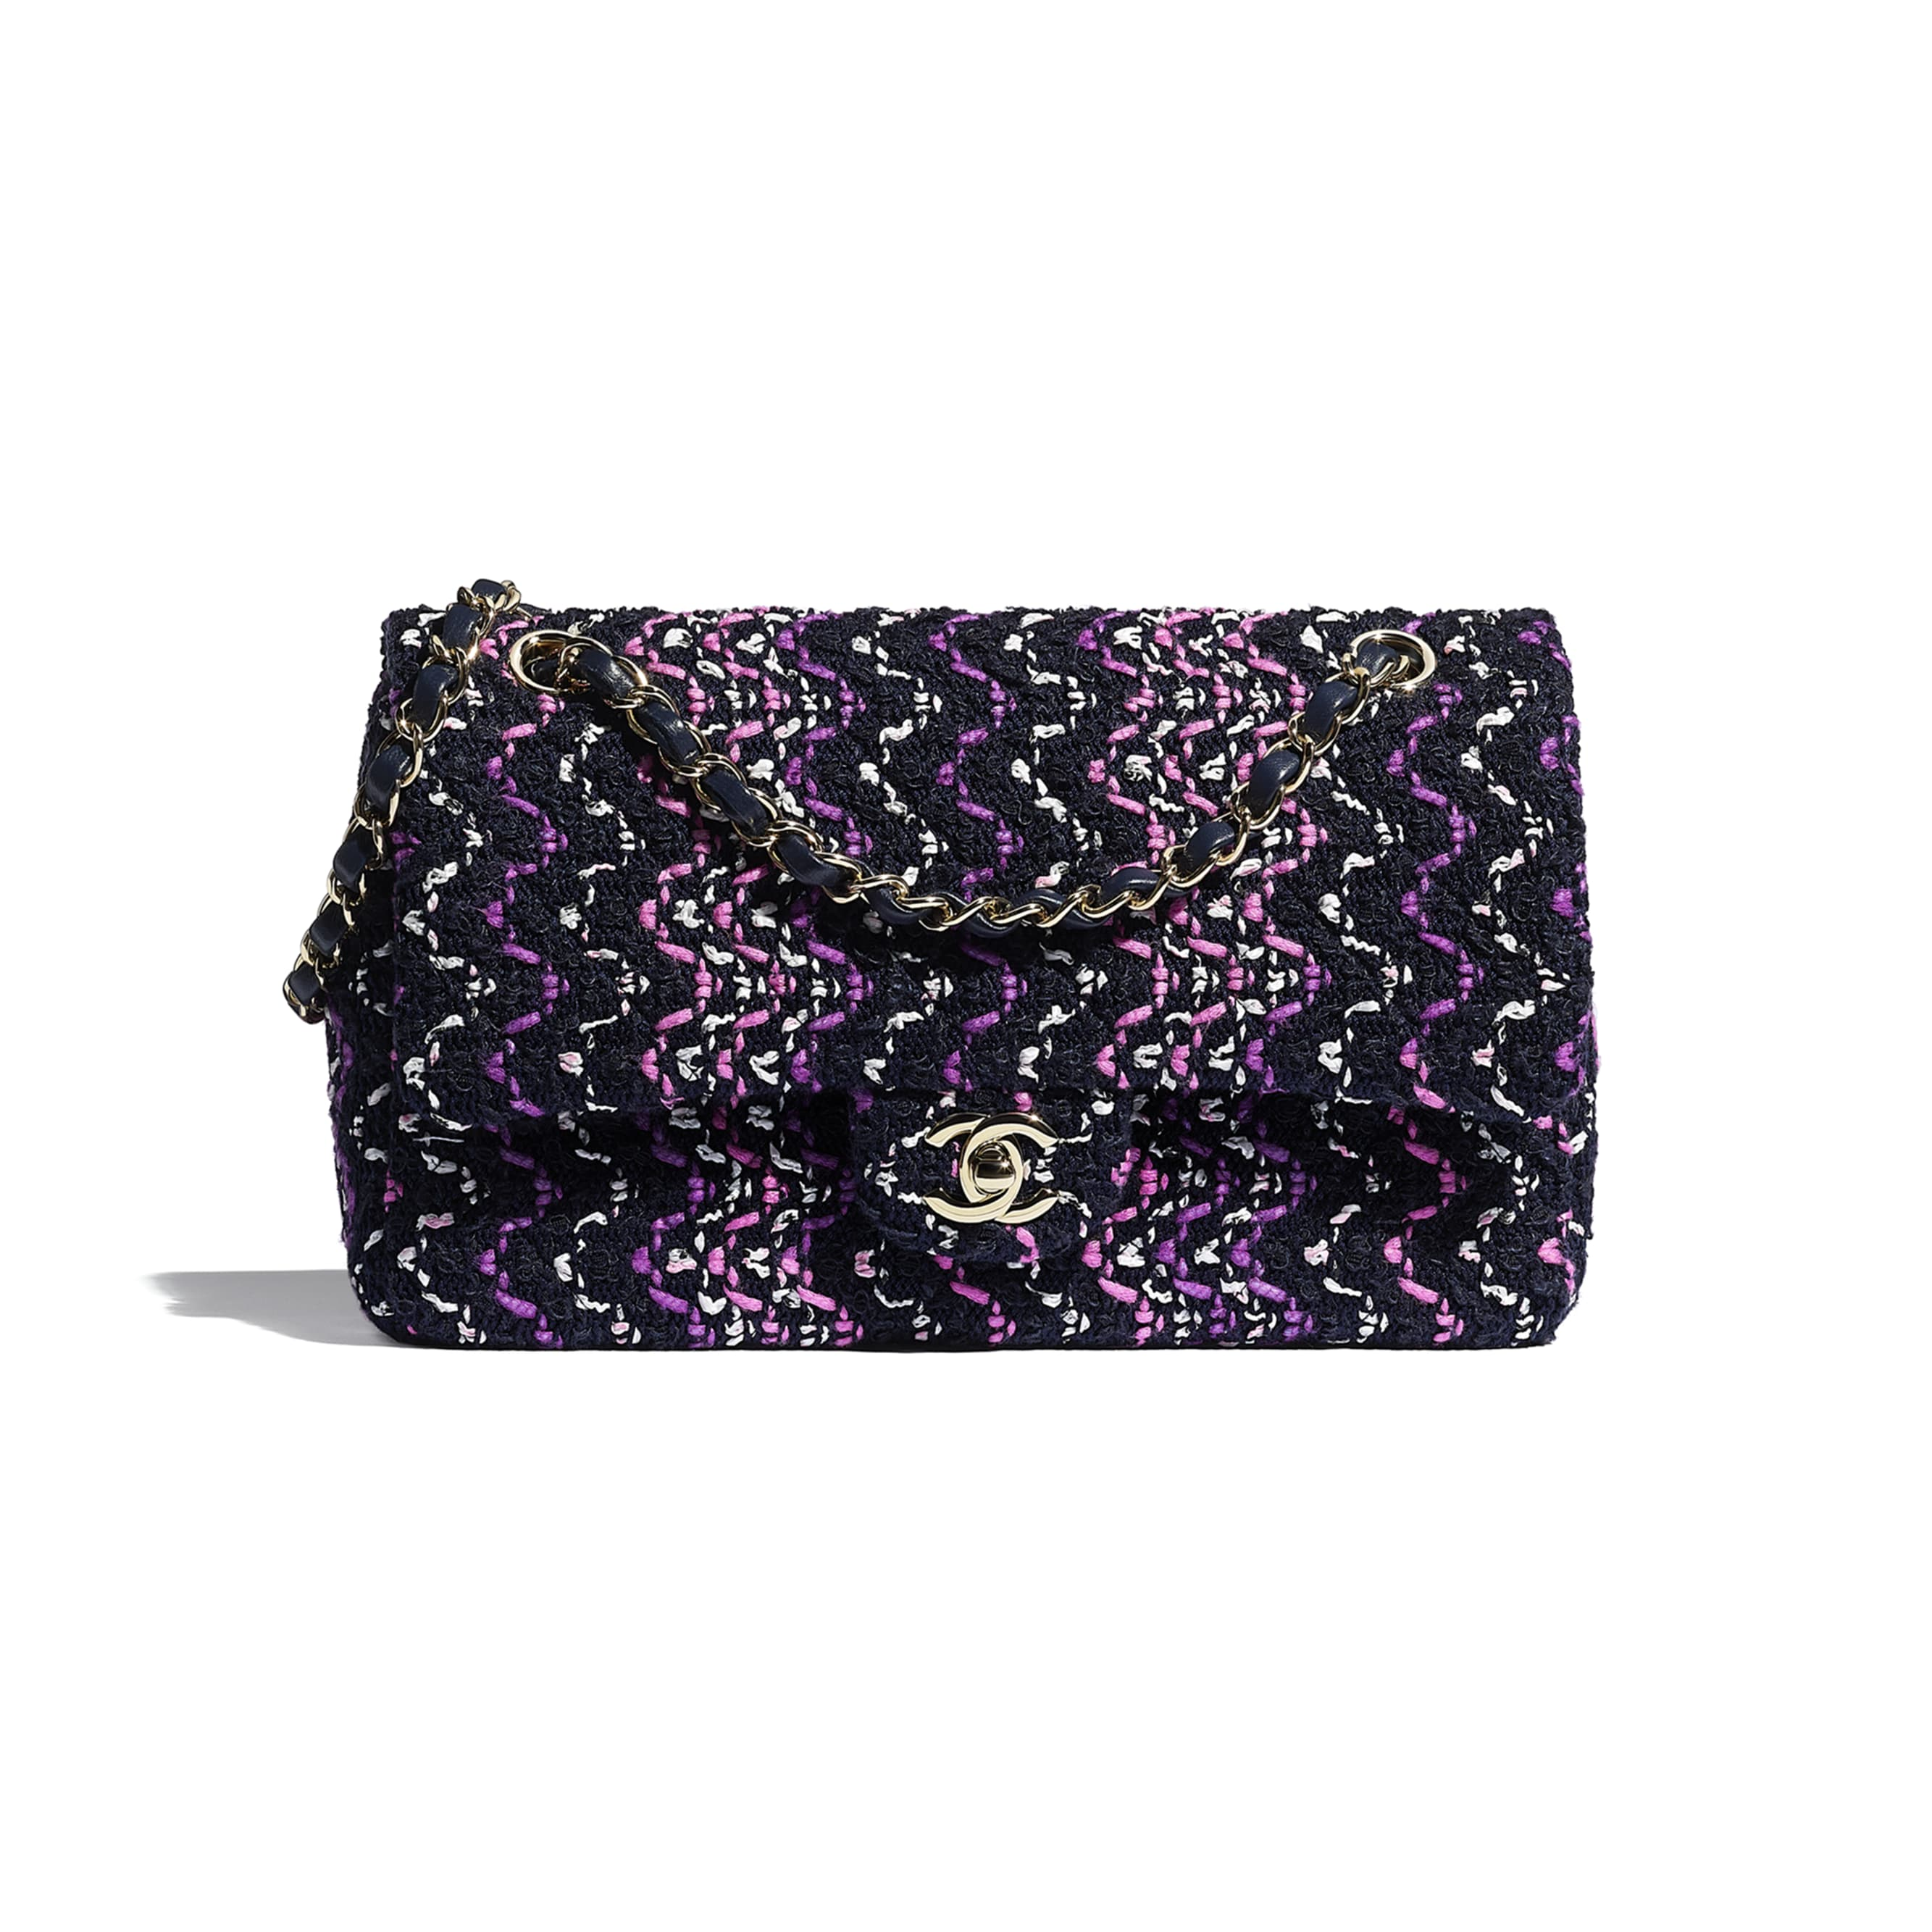 Flap Bag - Navy Blue, Purple & Pink - Cotton & Gold-Tone Metal - CHANEL - Default view - see standard sized version